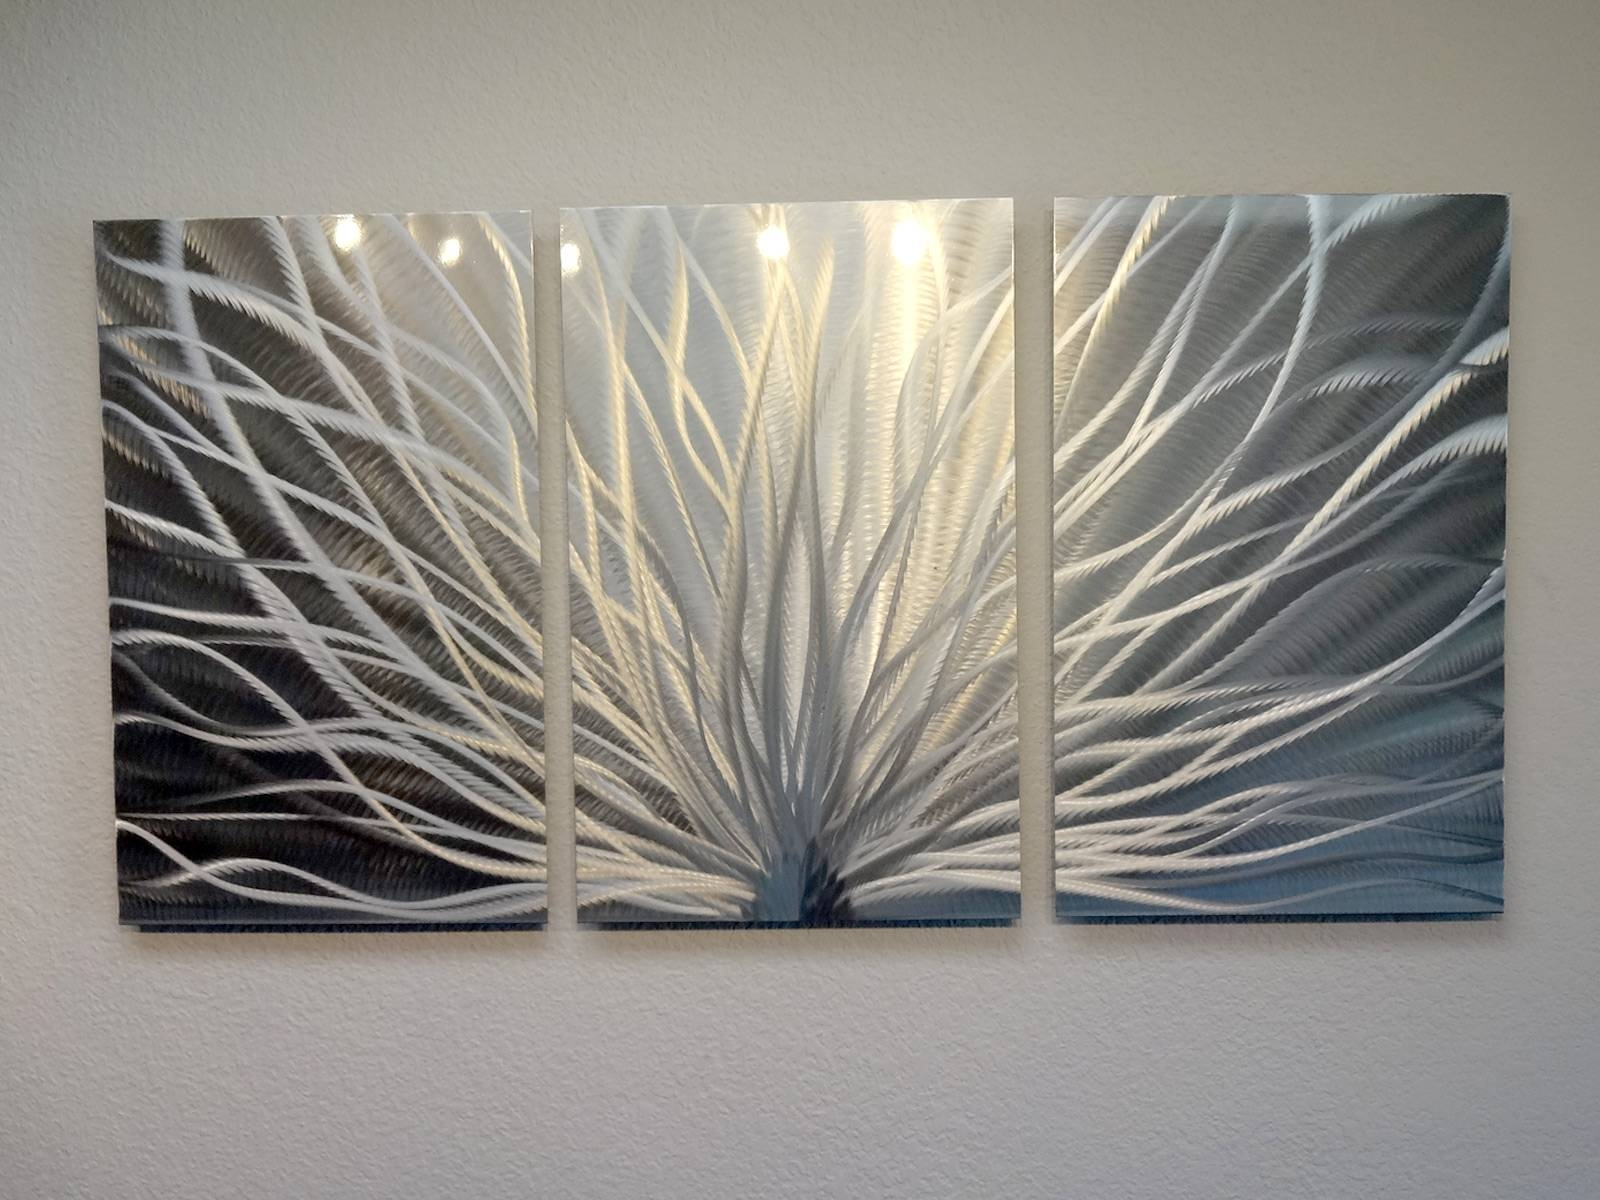 Radiance – 3 Panel Metal Wall Art Abstract Contemporary Modern For Latest Metal Wall Art Panels (Gallery 6 of 20)